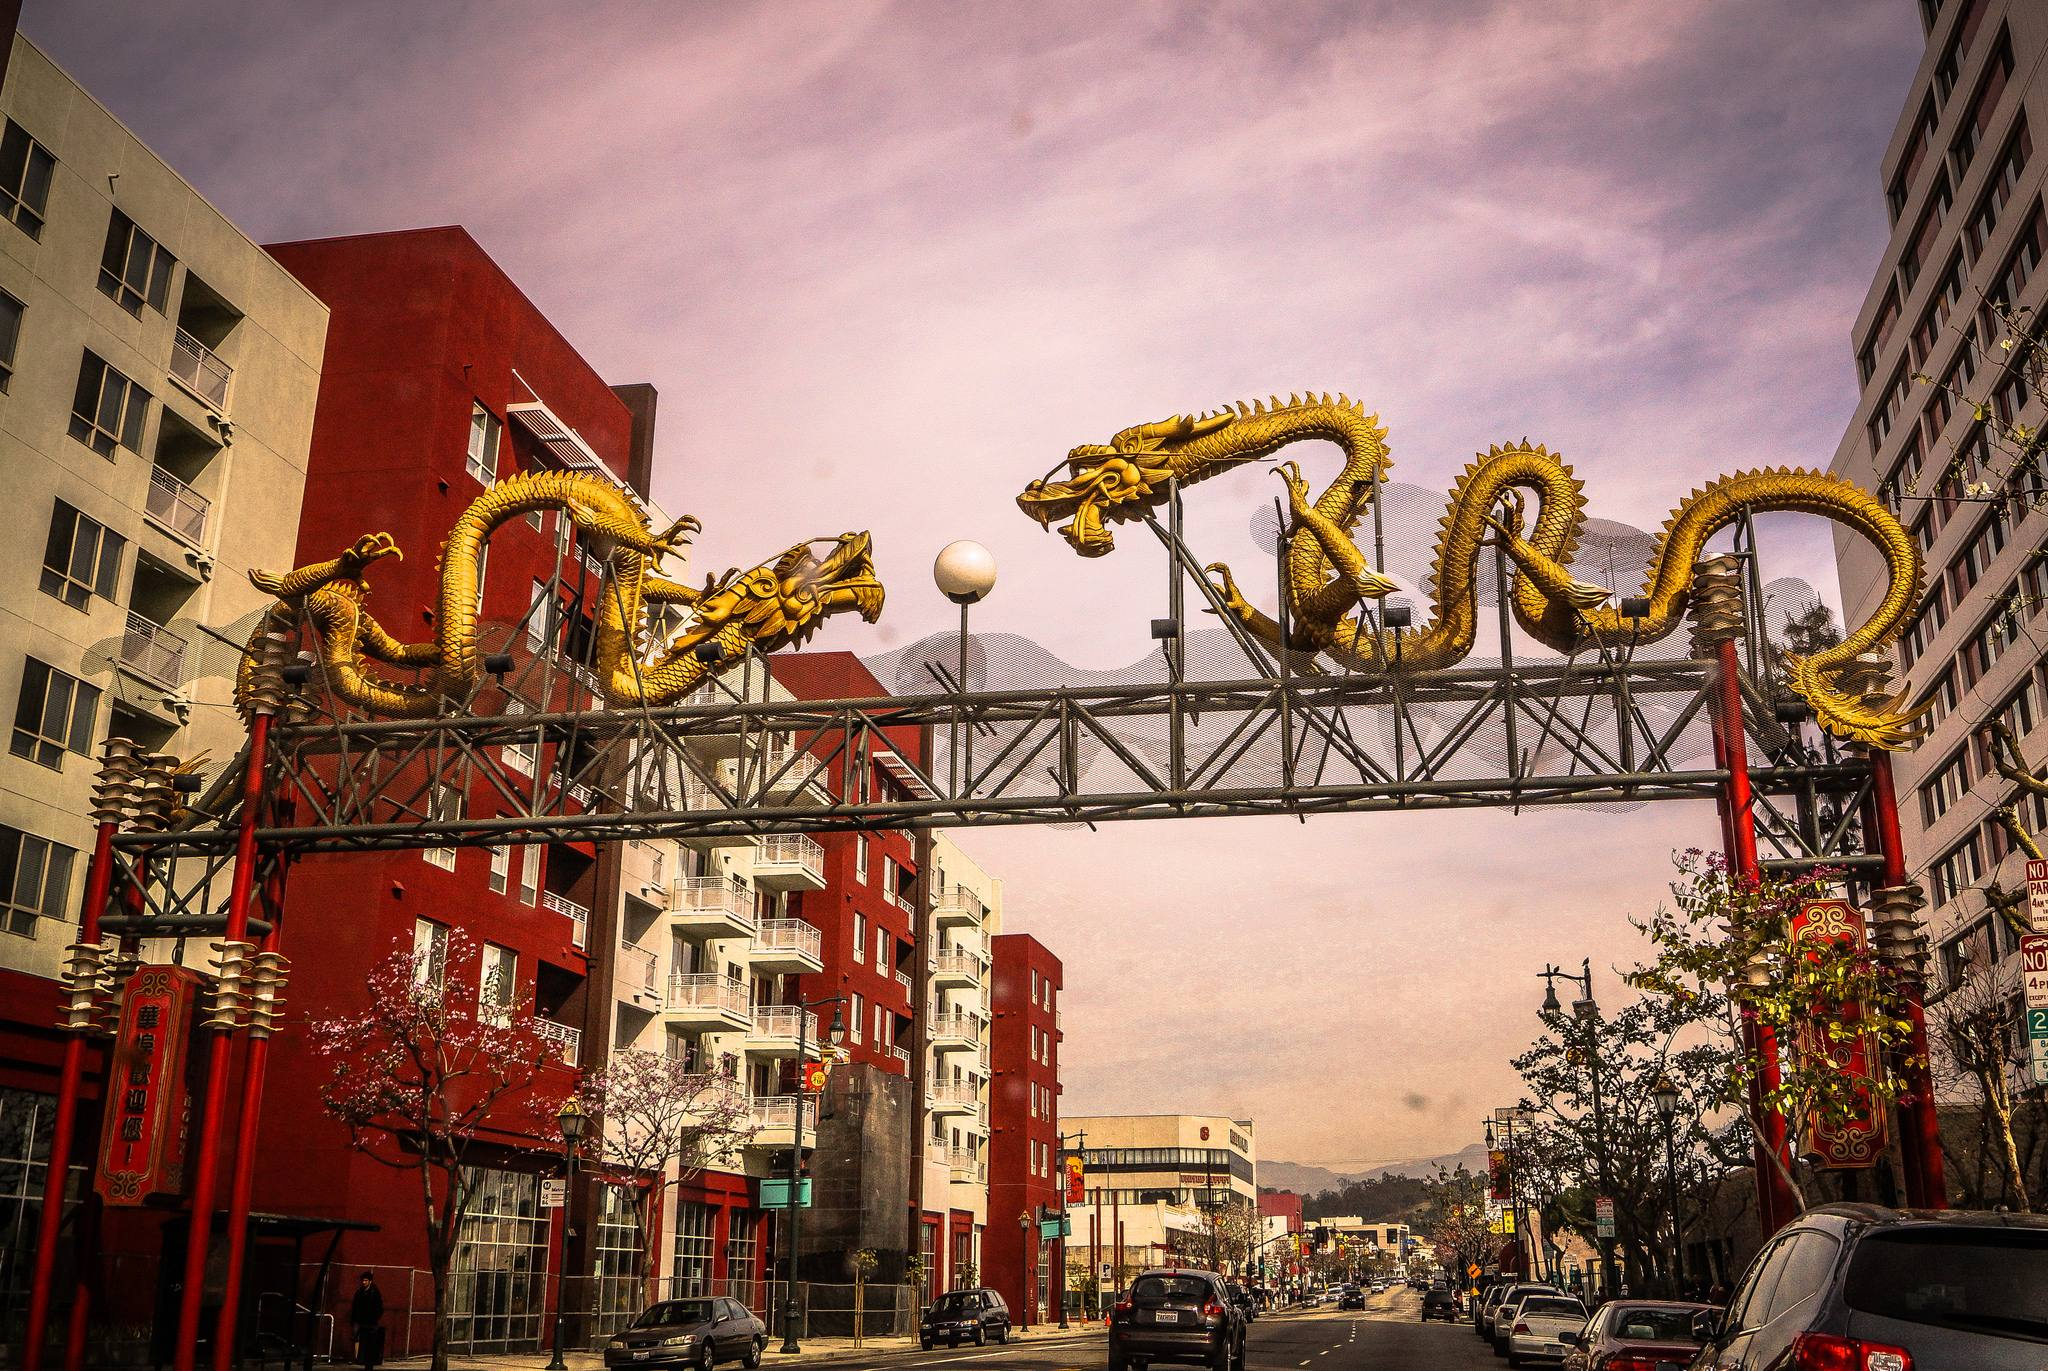 Twin Dragon Gateway in Chinatown Los Angeles